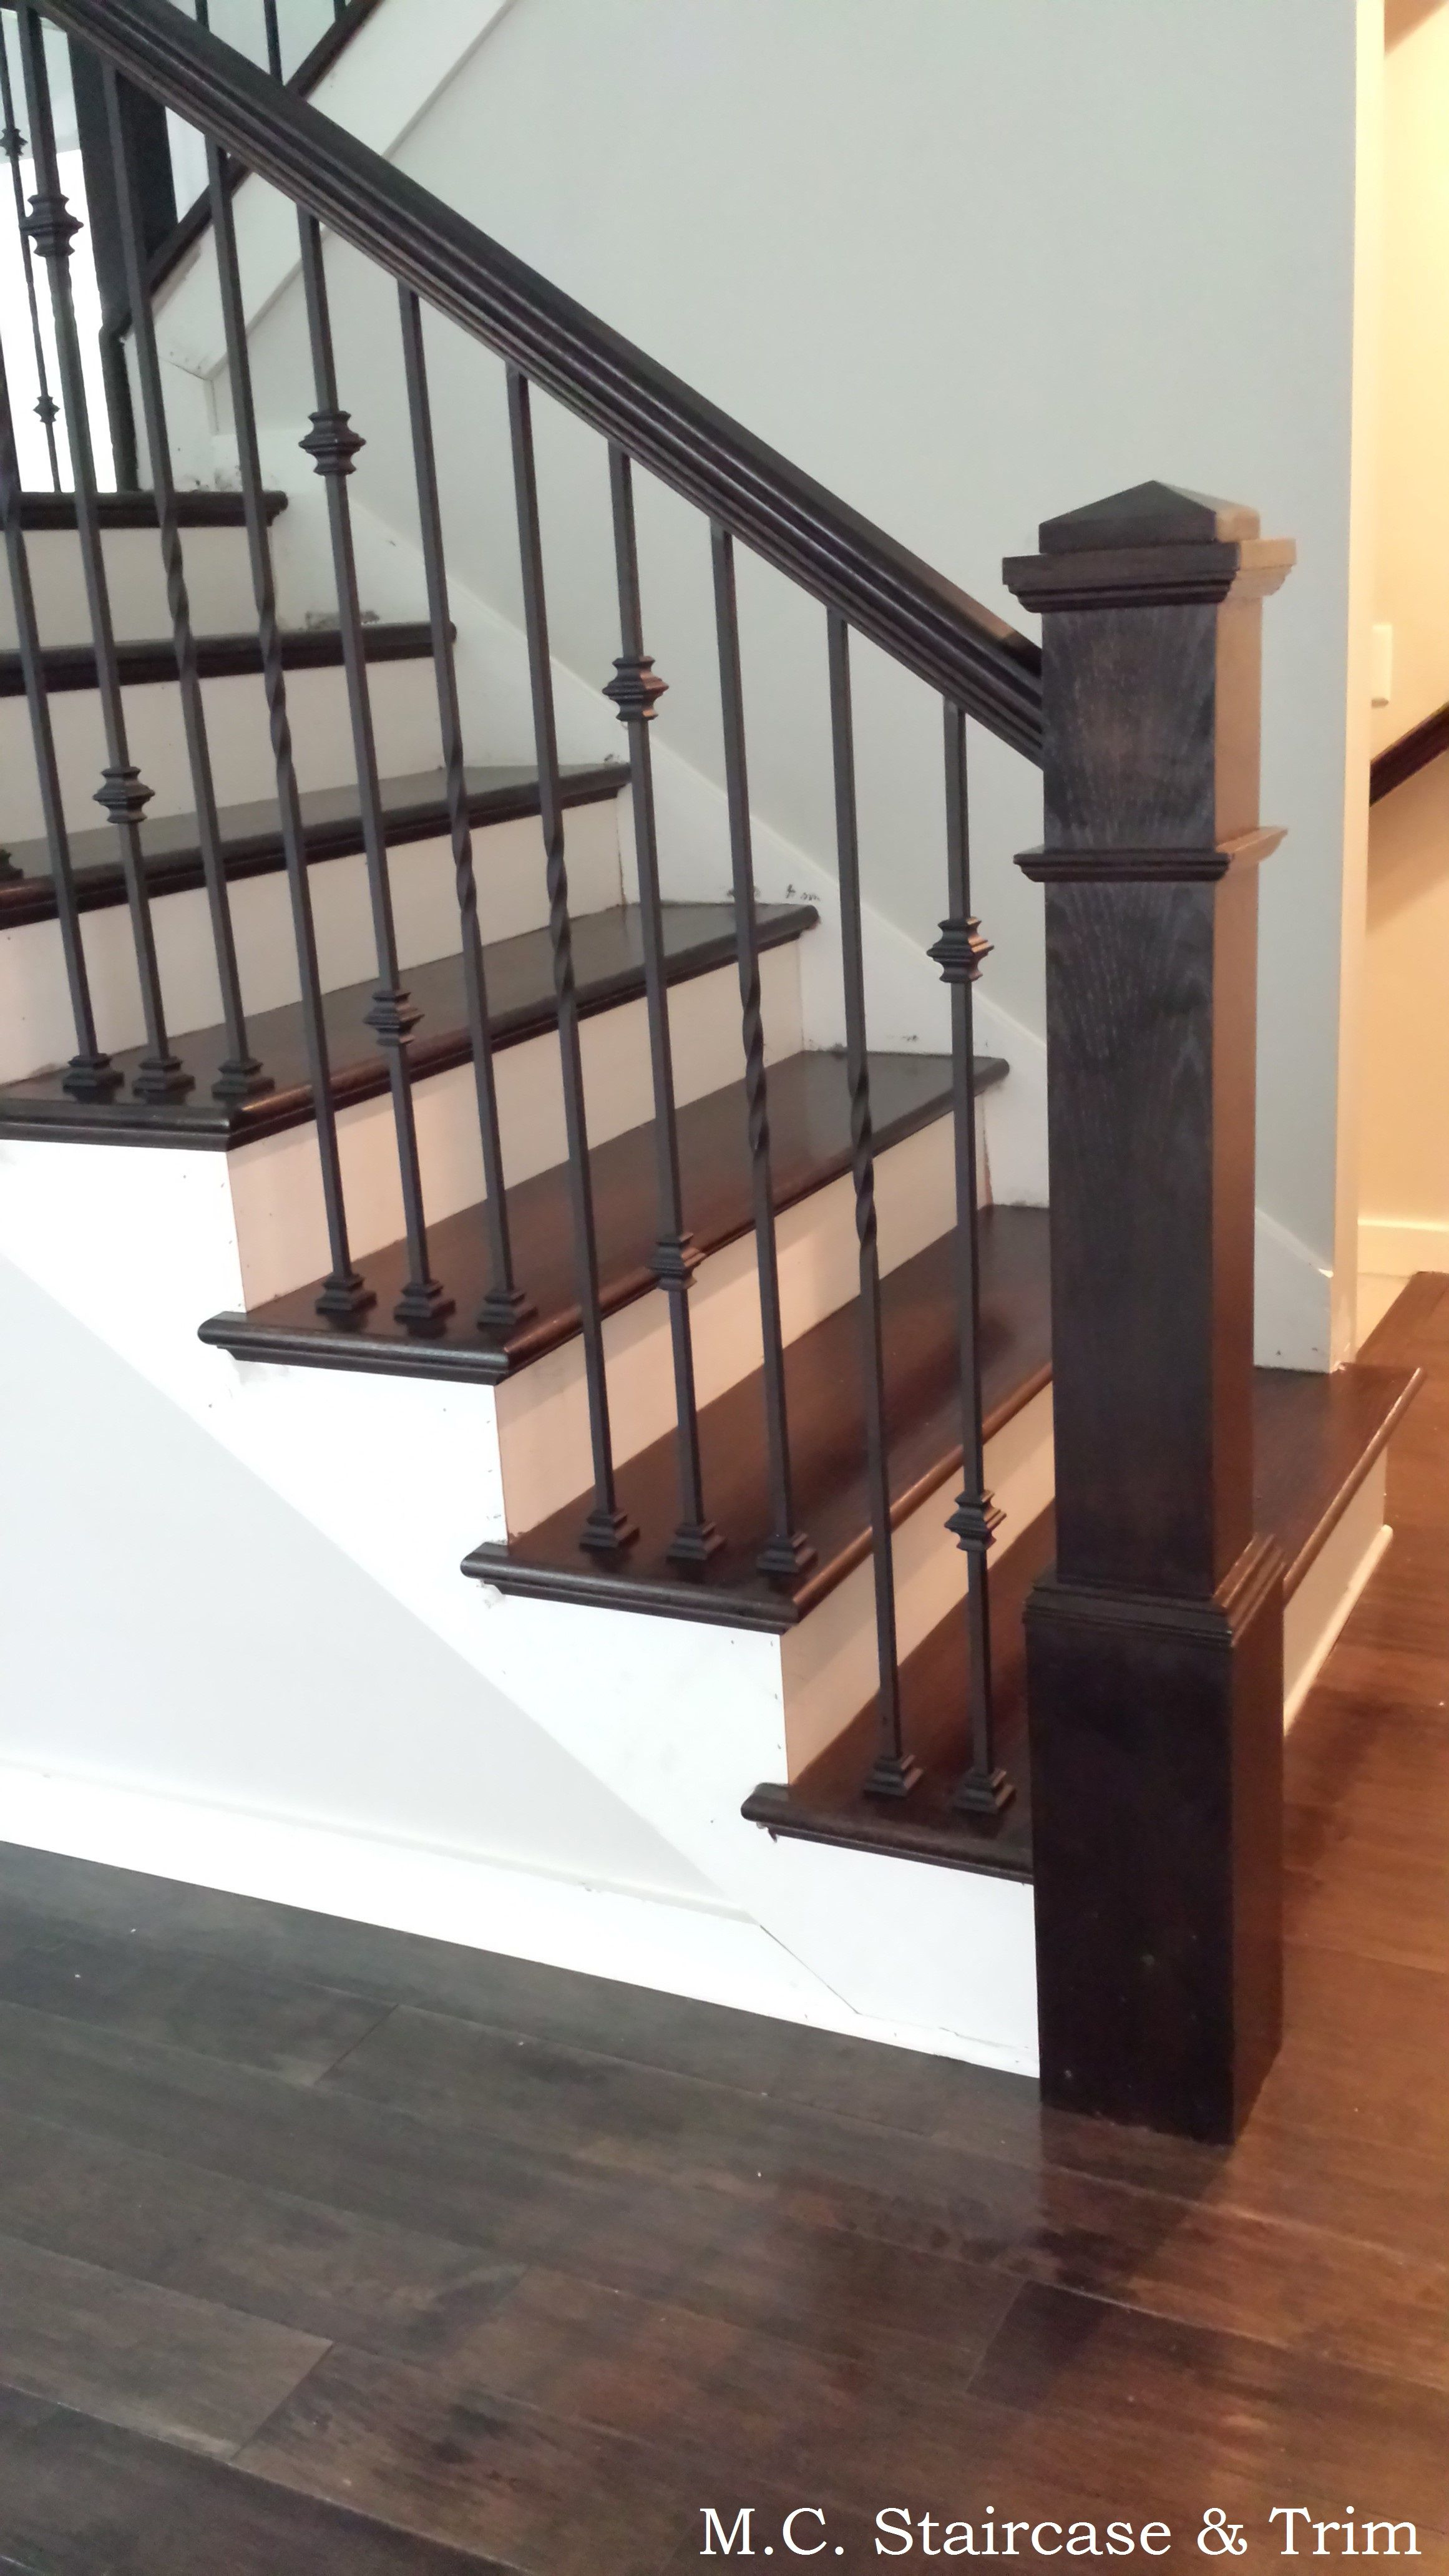 Staircase Remodel From M C Staircase Trim Removal Of Carpet | Iron And Wood Staircase | Traditional | Spiral | White | Internal | Cherry Wood